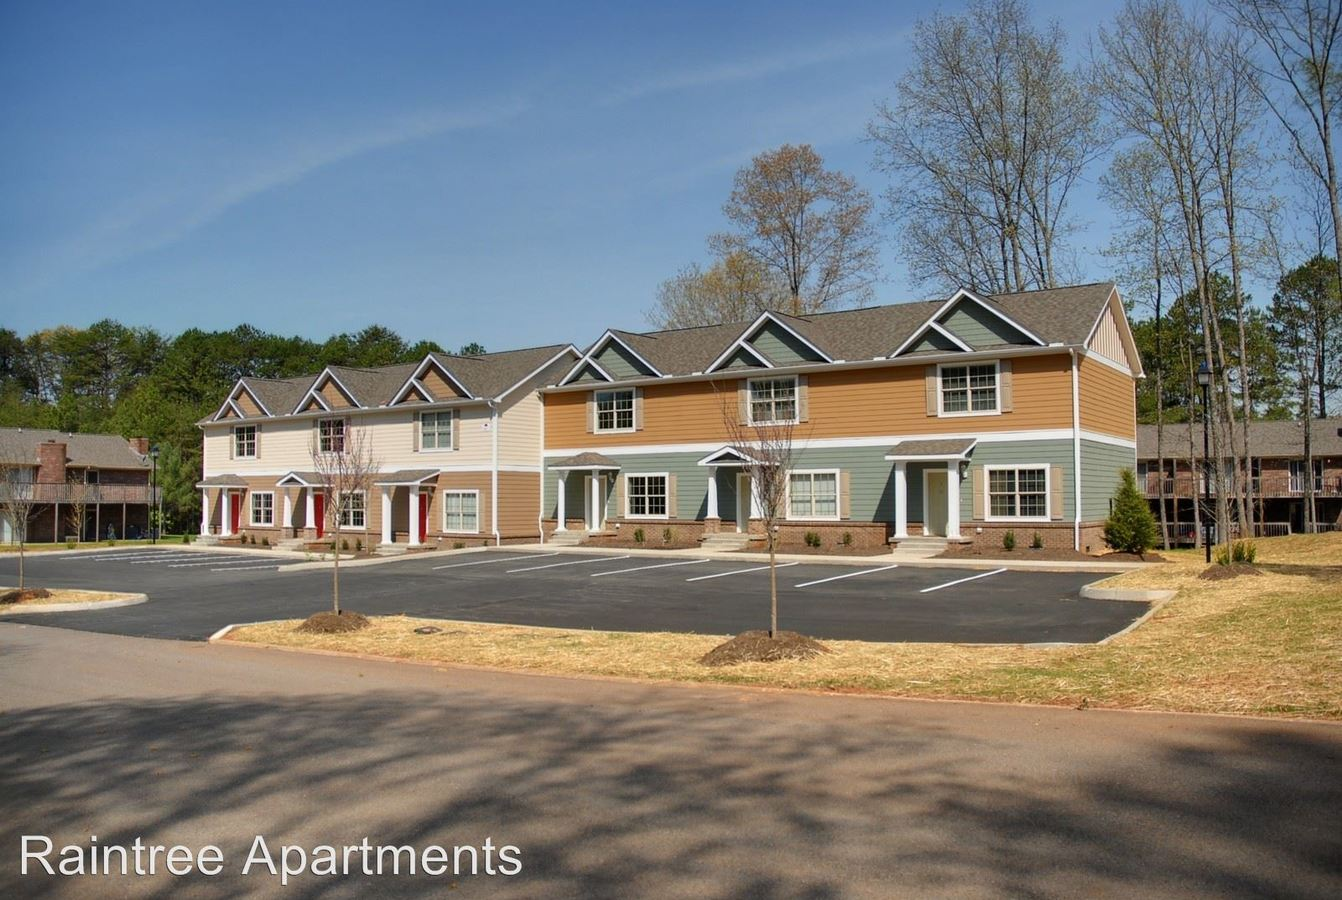 2 Bedrooms 2 Bathrooms Apartment for rent at Raintree Apartments in Knoxville, TN